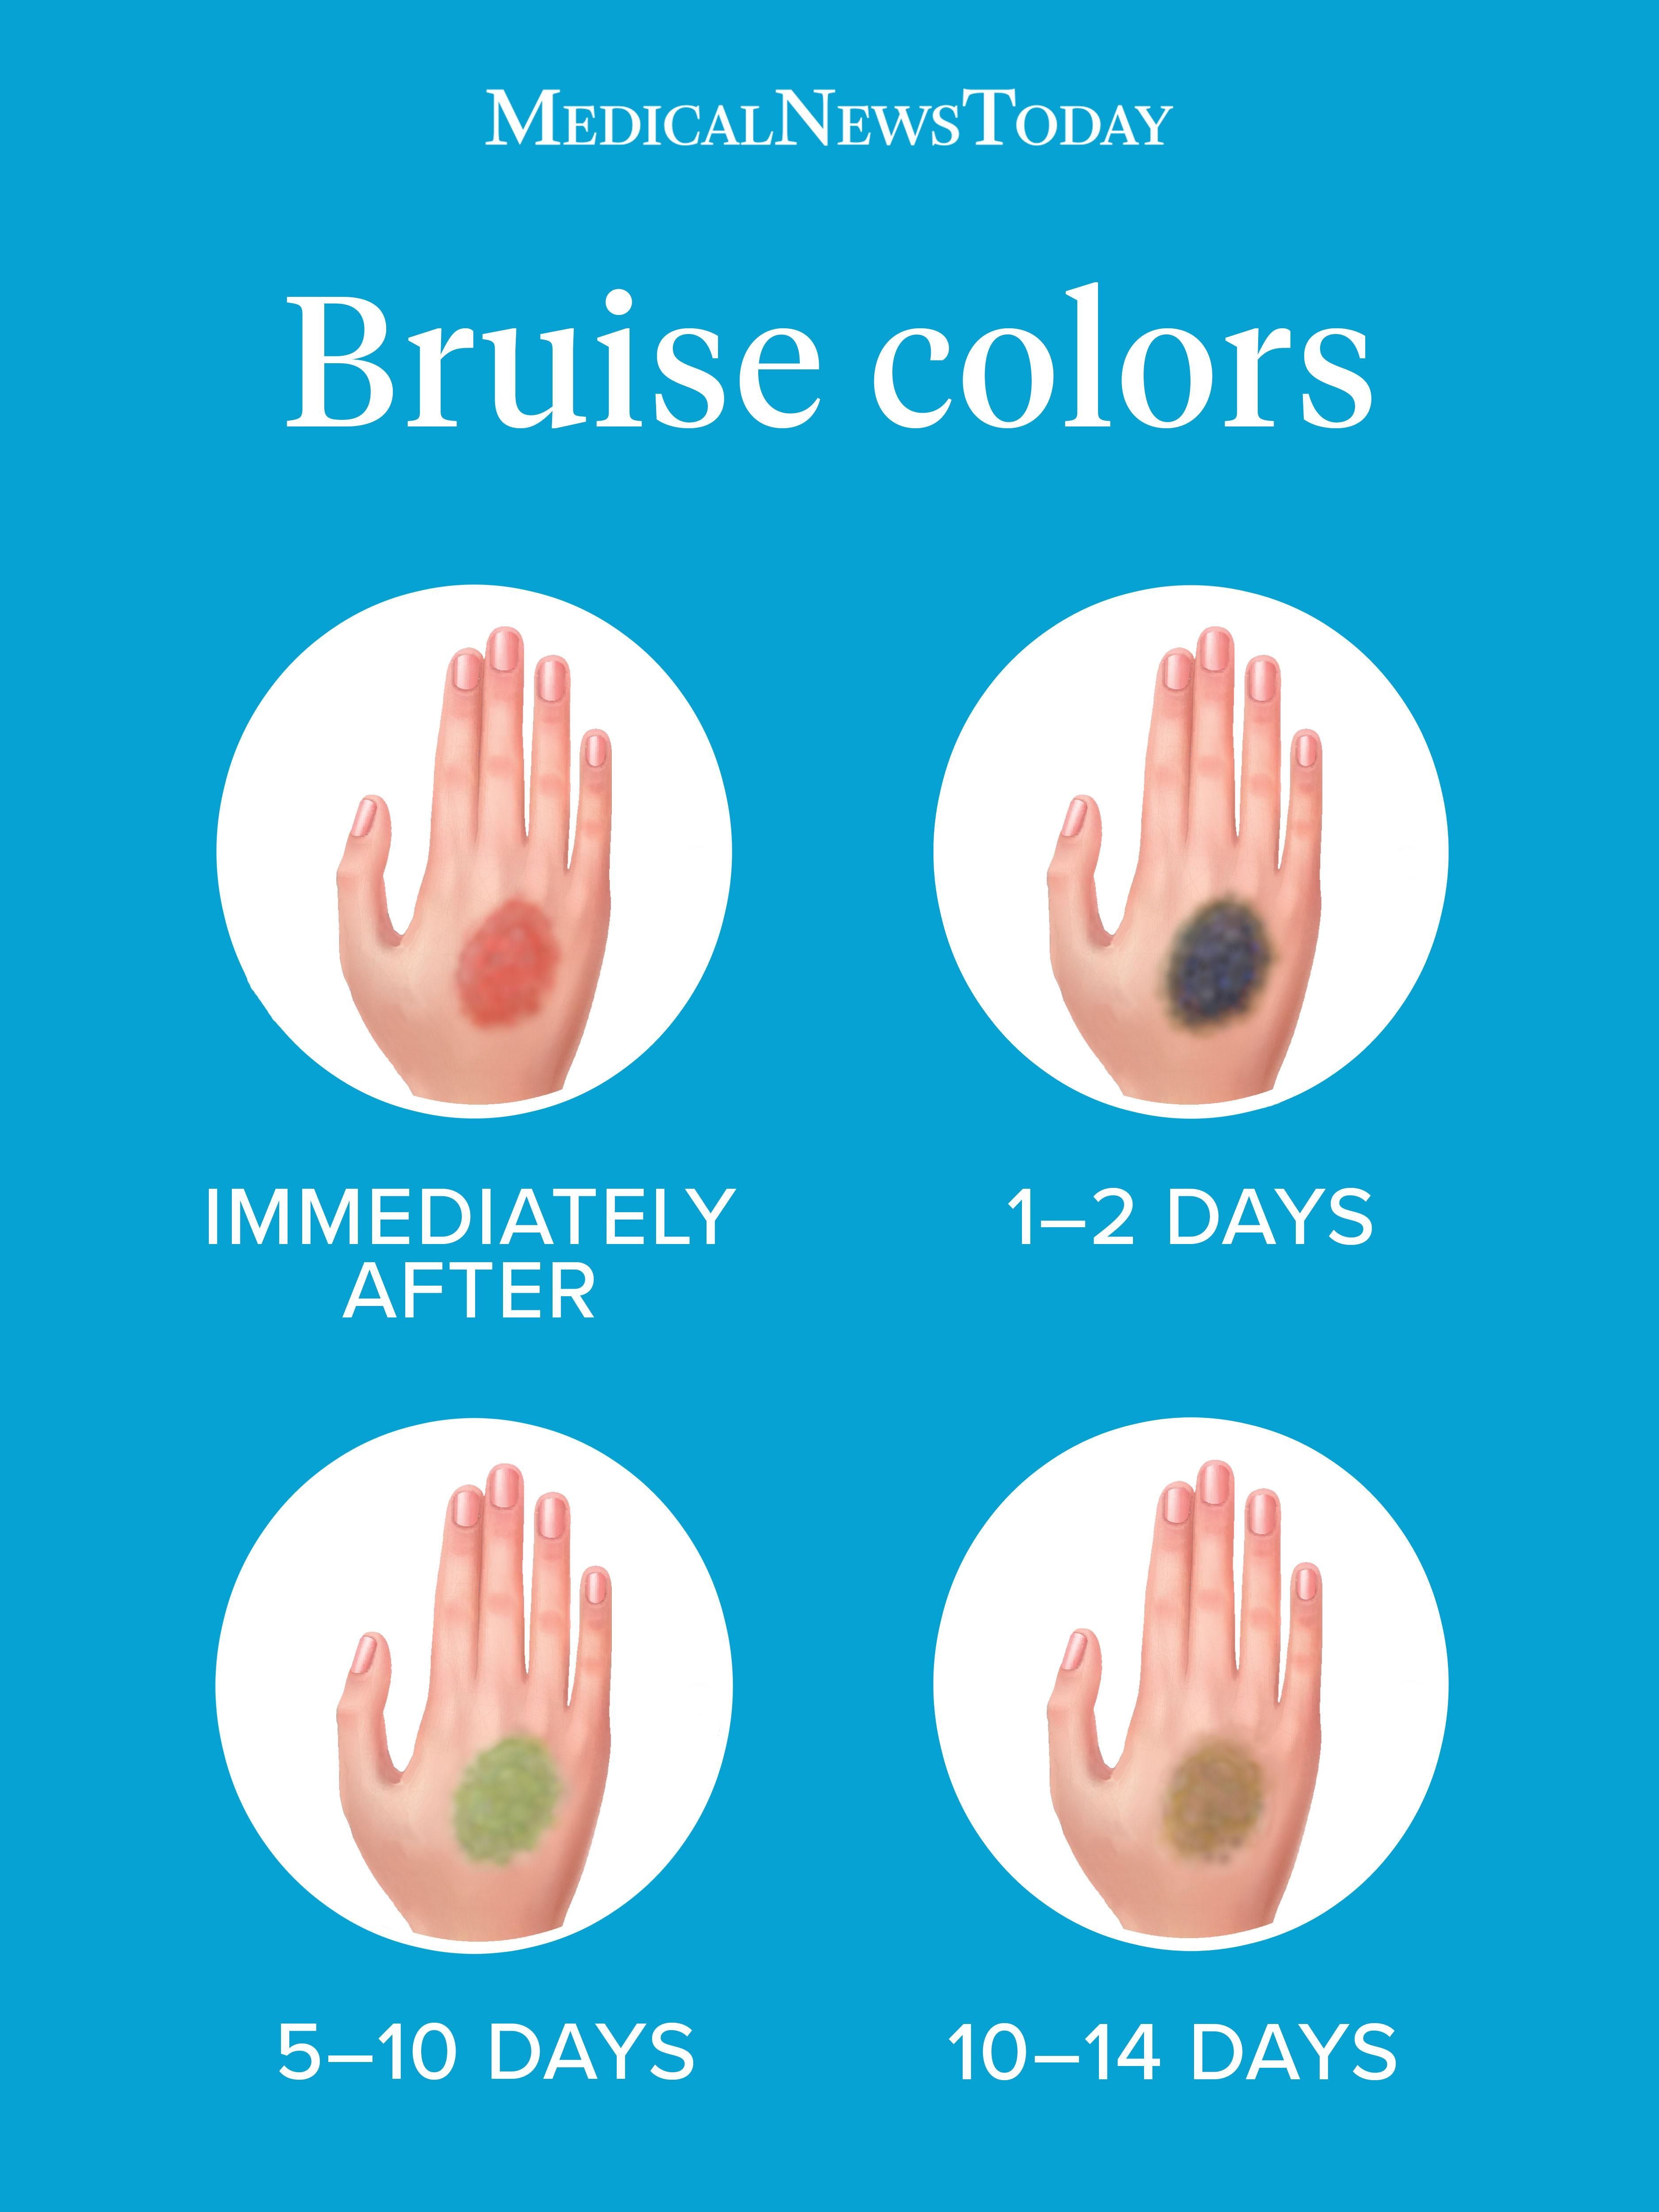 Bruise colors: Causes, timescale, and when to see a doctor